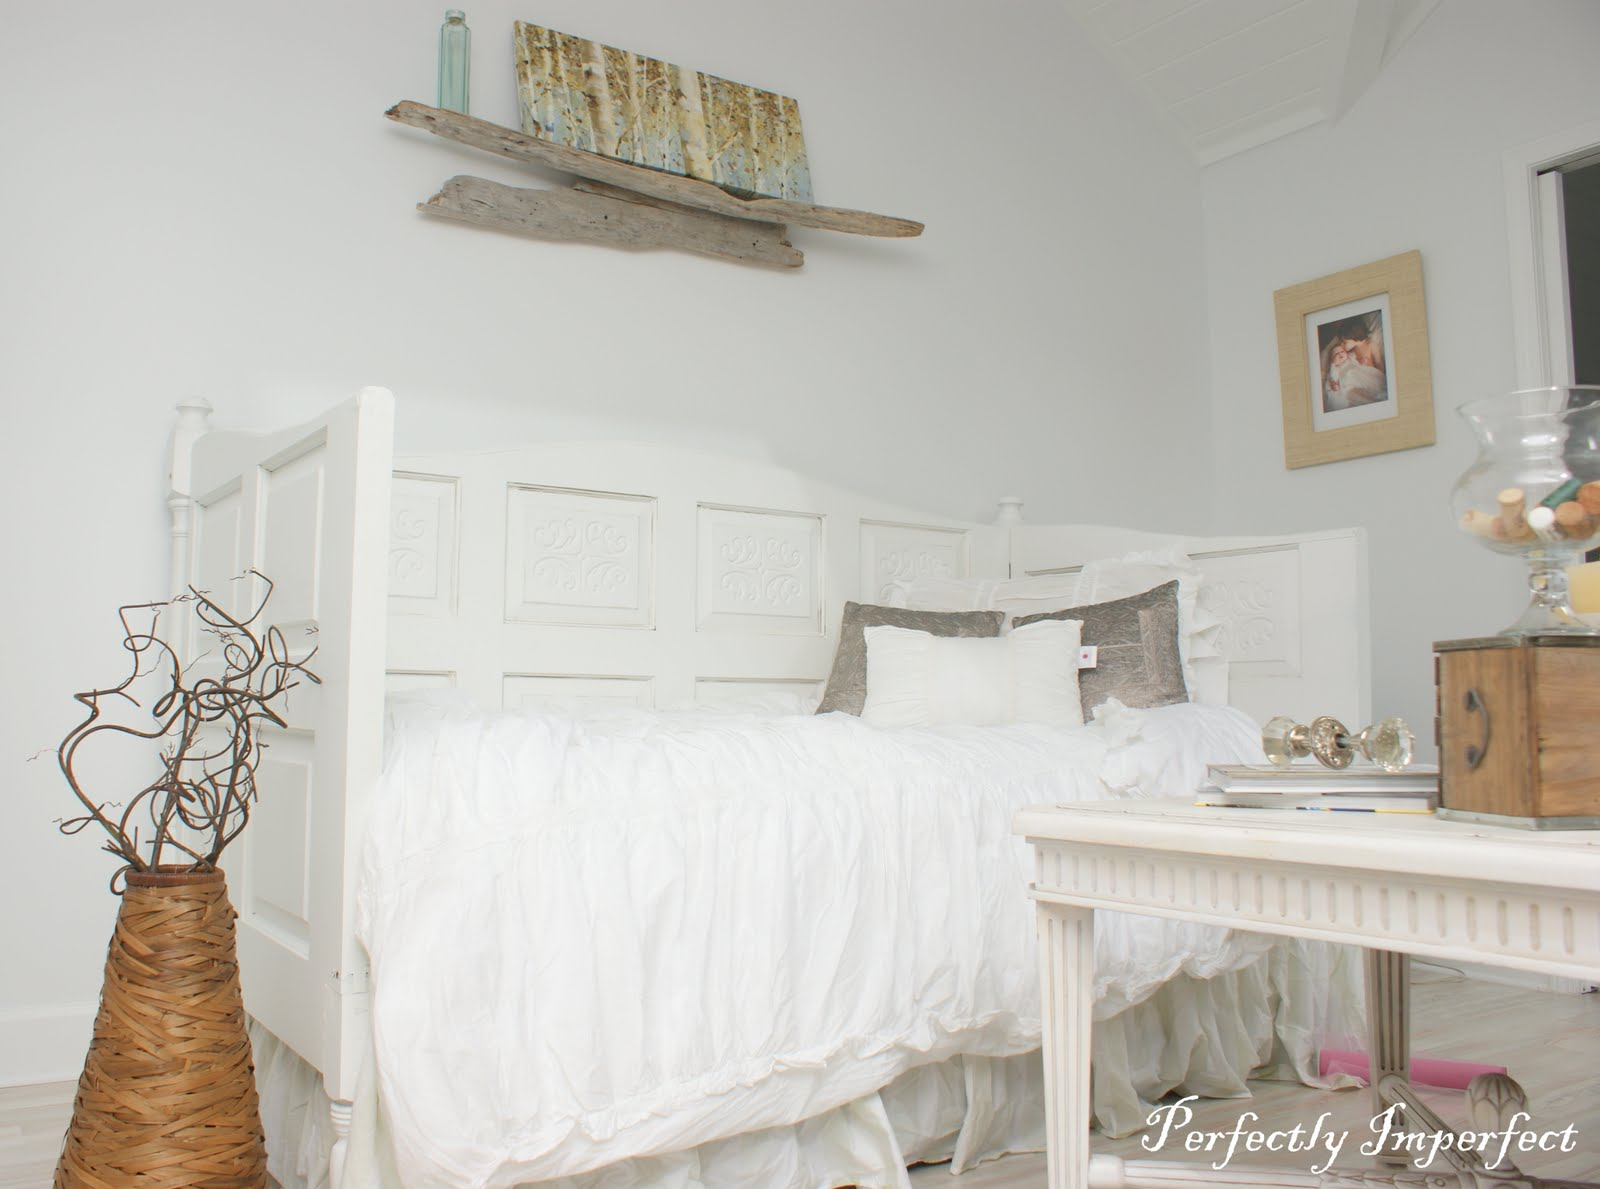 Doors to Daybed from Perfectly Imperfect